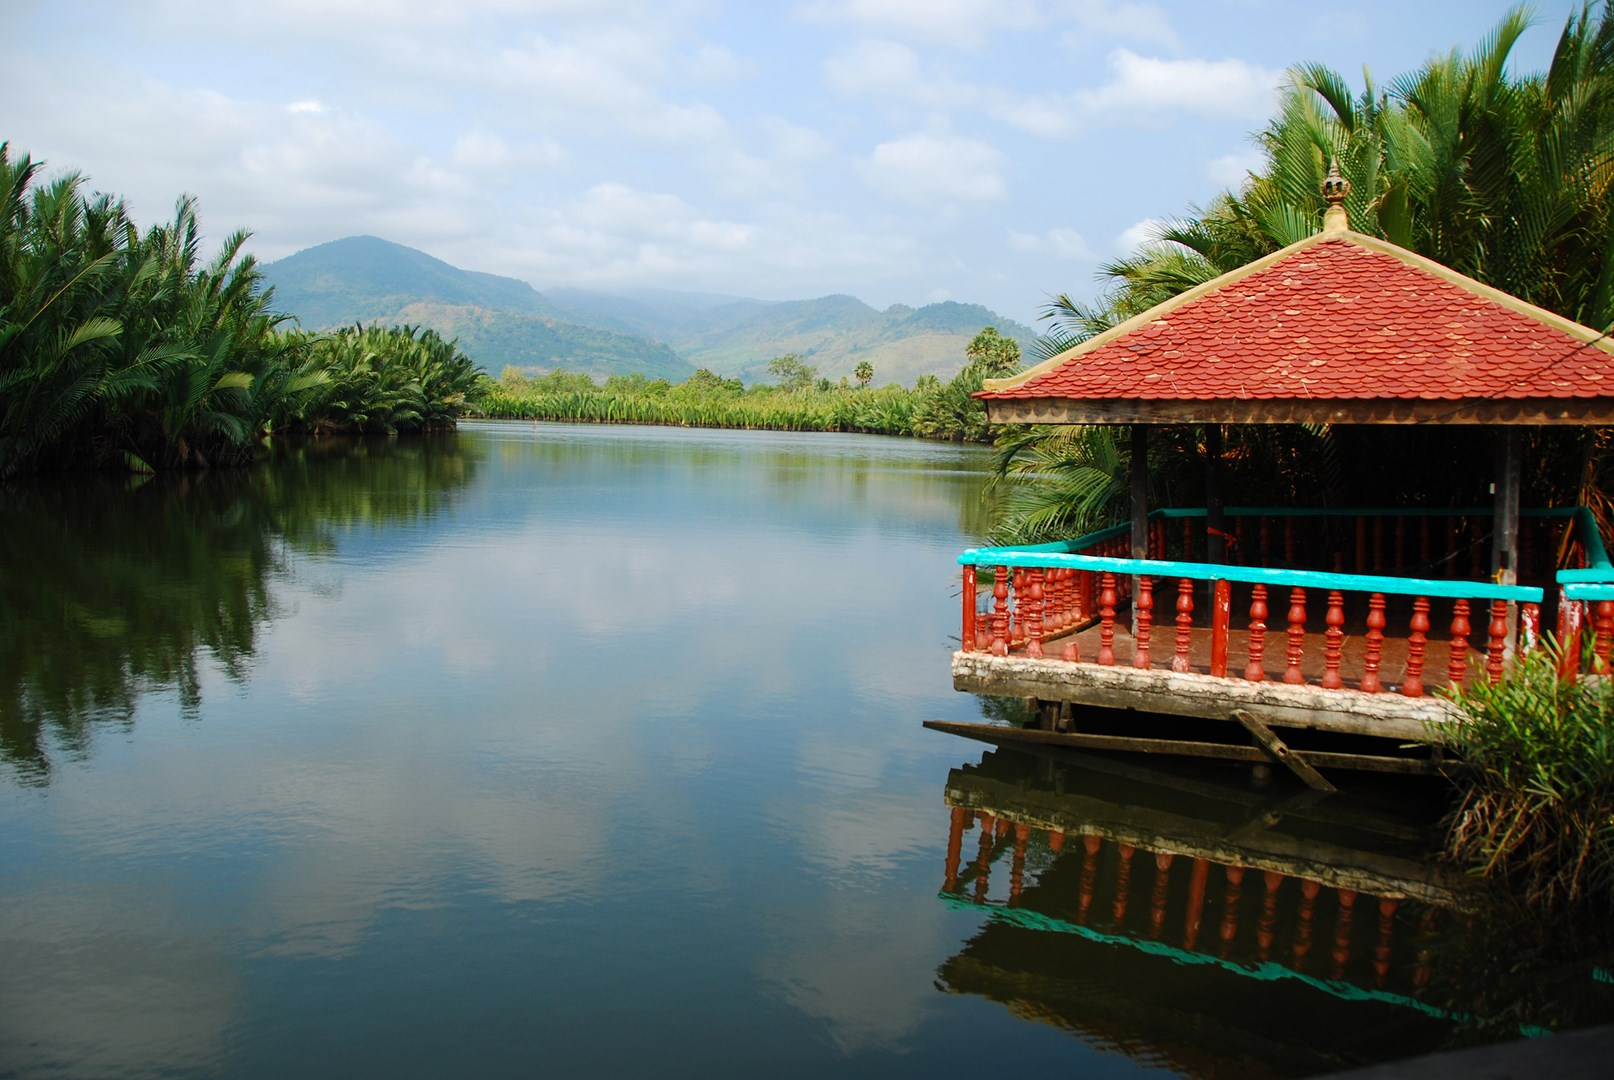 holly_kampot_gazebo-Copy.jpg